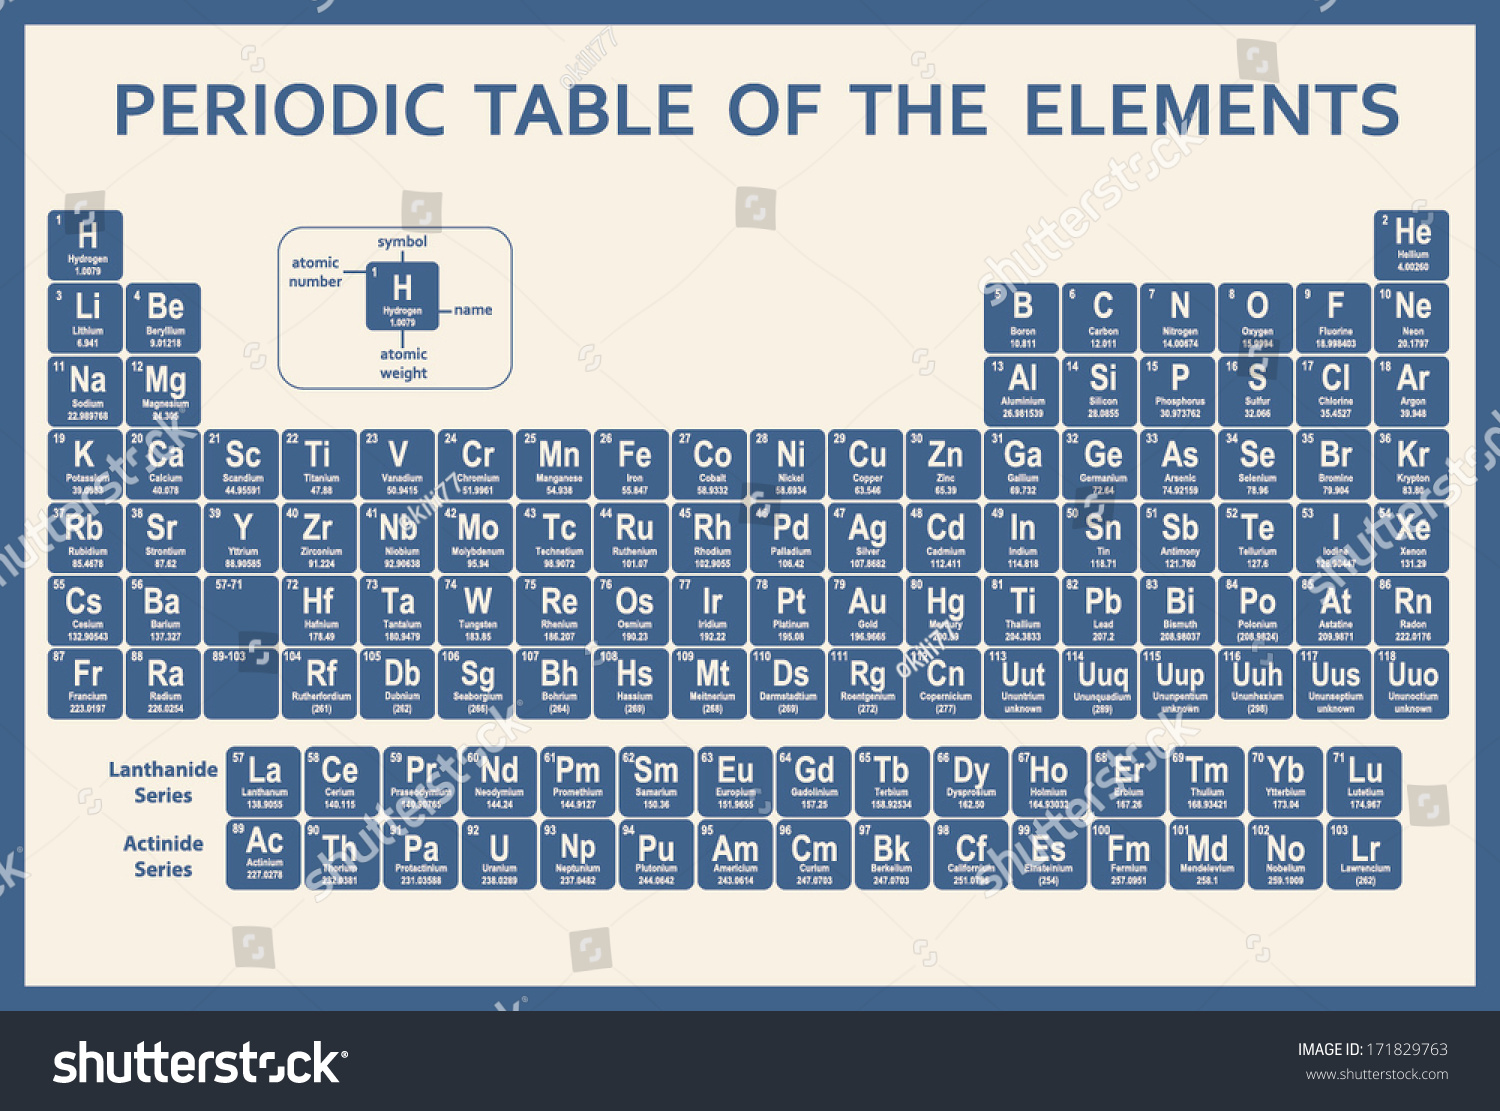 Periodic table element hg choice image periodic table images periodic table element hg choice image periodic table images periodic table element hg image collections periodic gamestrikefo Images